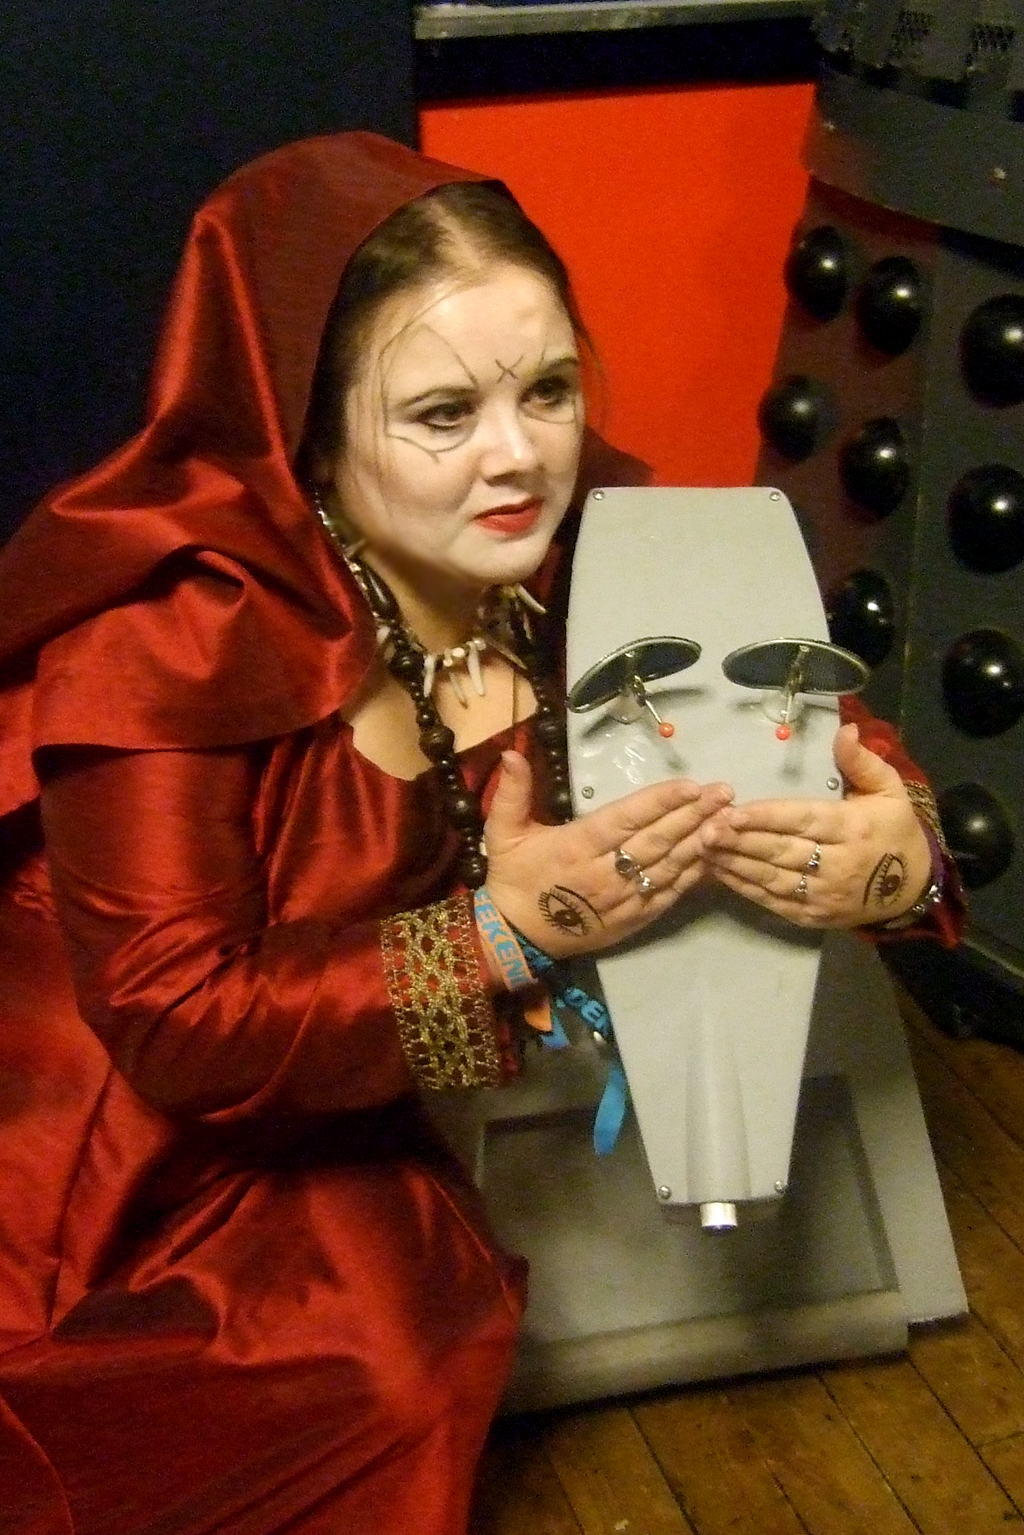 A woman dressed in a red satin outfit, with facepaint on her face, crouched down next to a robot dog